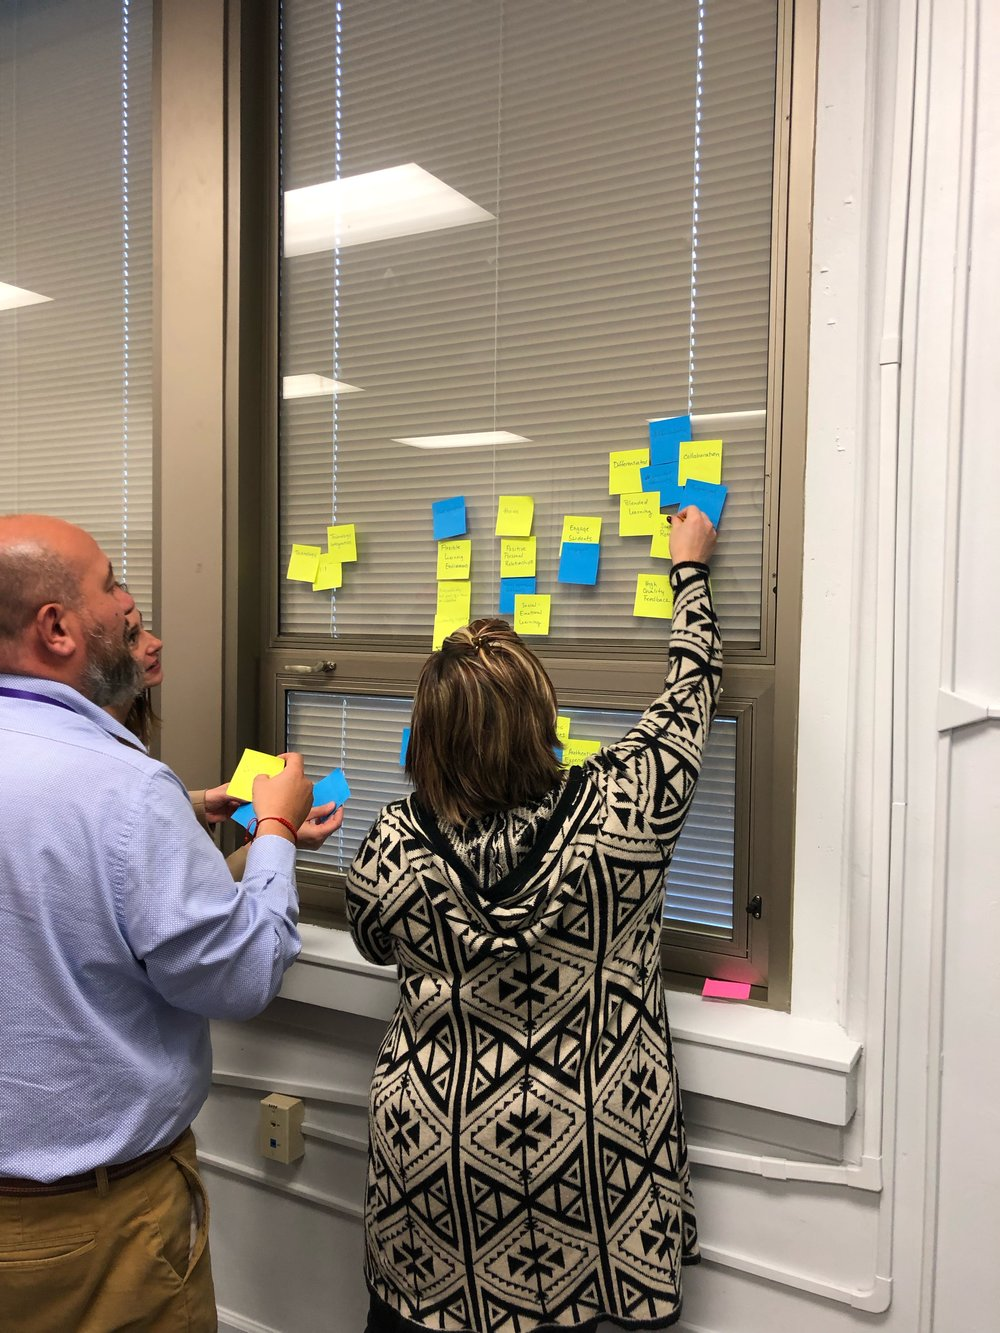 Jena Cooper and Erik Barbon engage in an Affinity Mapping activity to flush out their major components and big ideas from the prompt responses.